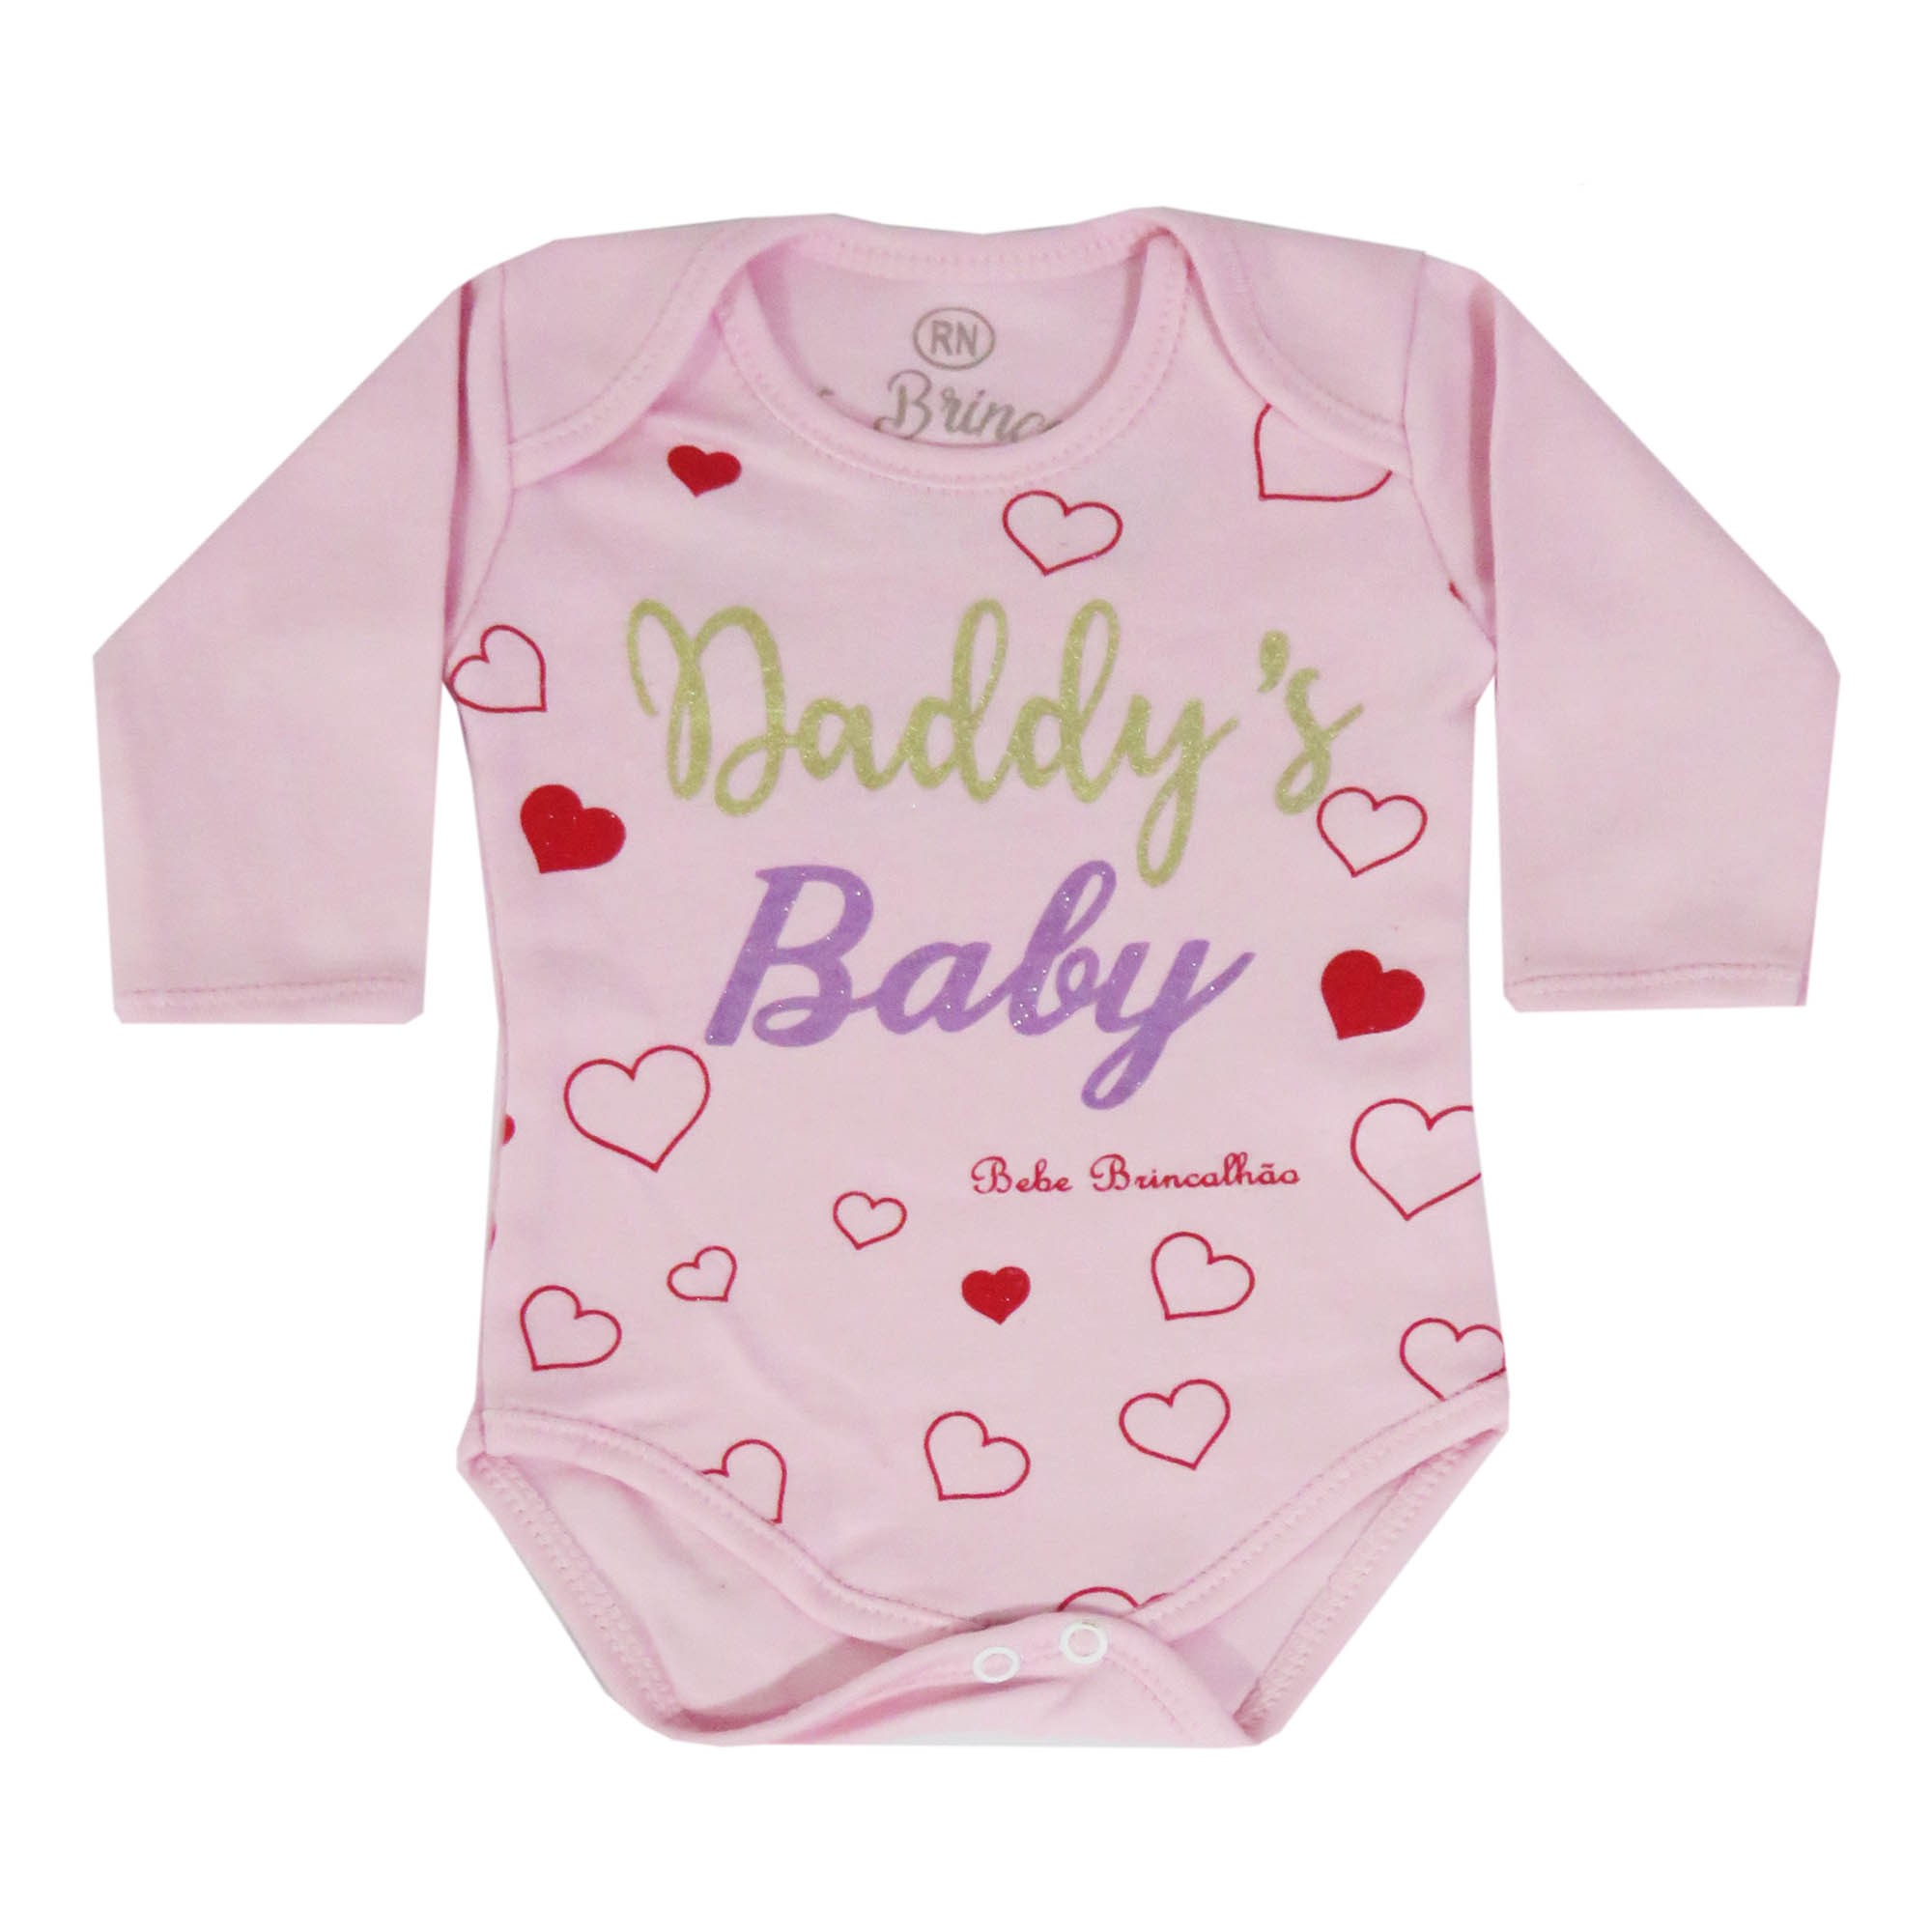 Body Manga Longa Bebê Brincalhão Frases Mon And Dad, Mommy's Girl, Daddy's Baby - RN ao G